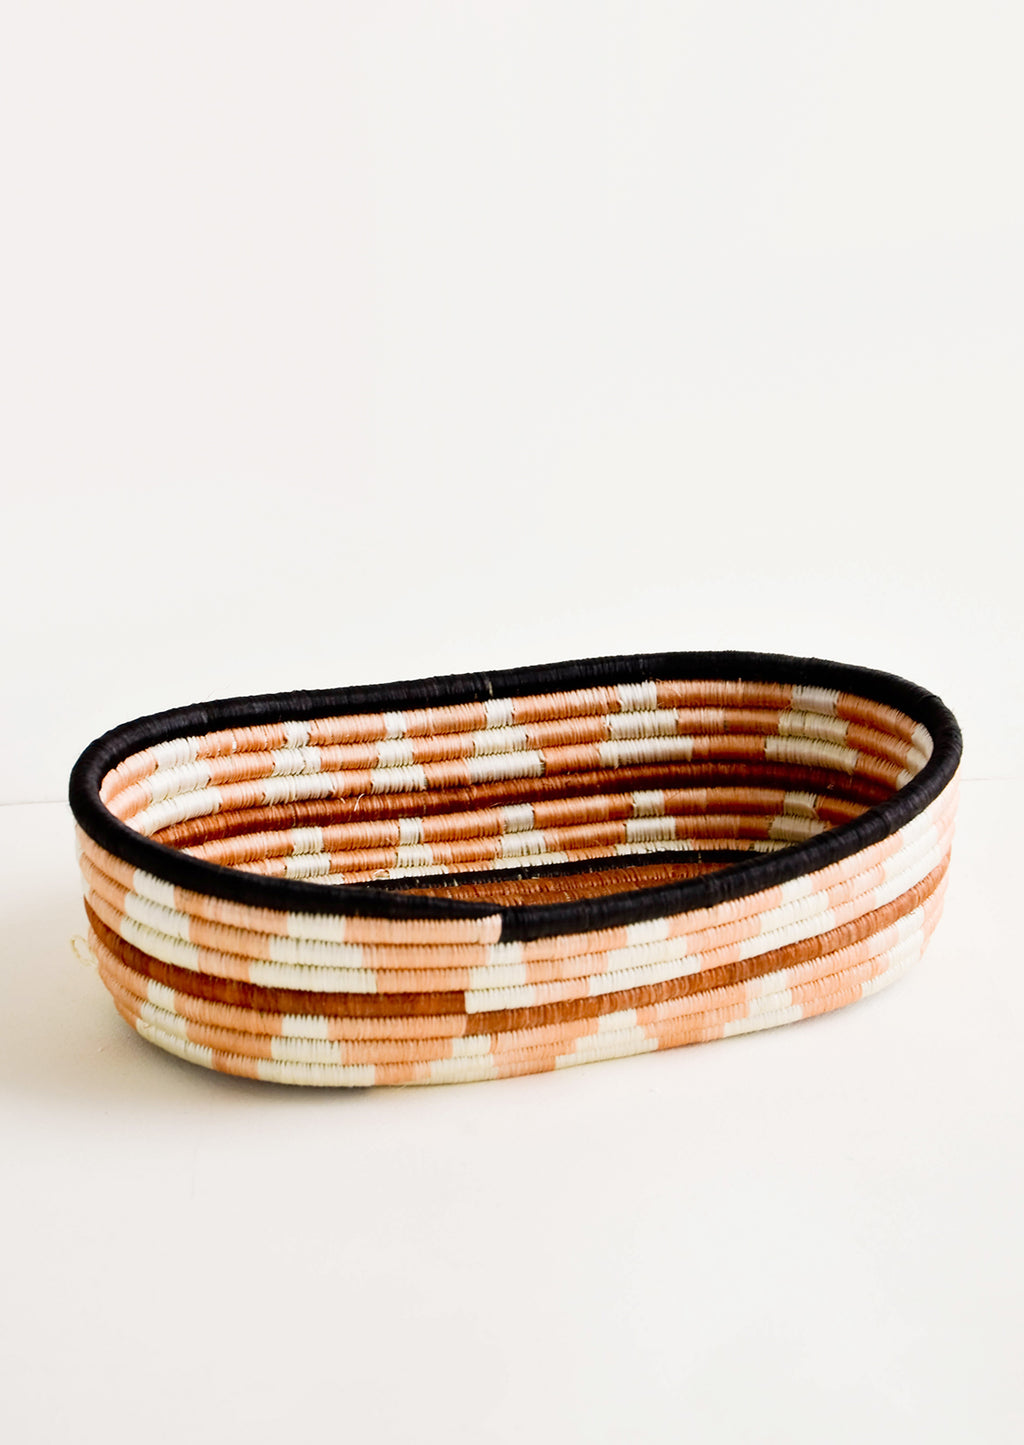 Peach Multi: Oval shaped shallow bread basket made from woven natural grass in peachy geometric pattern